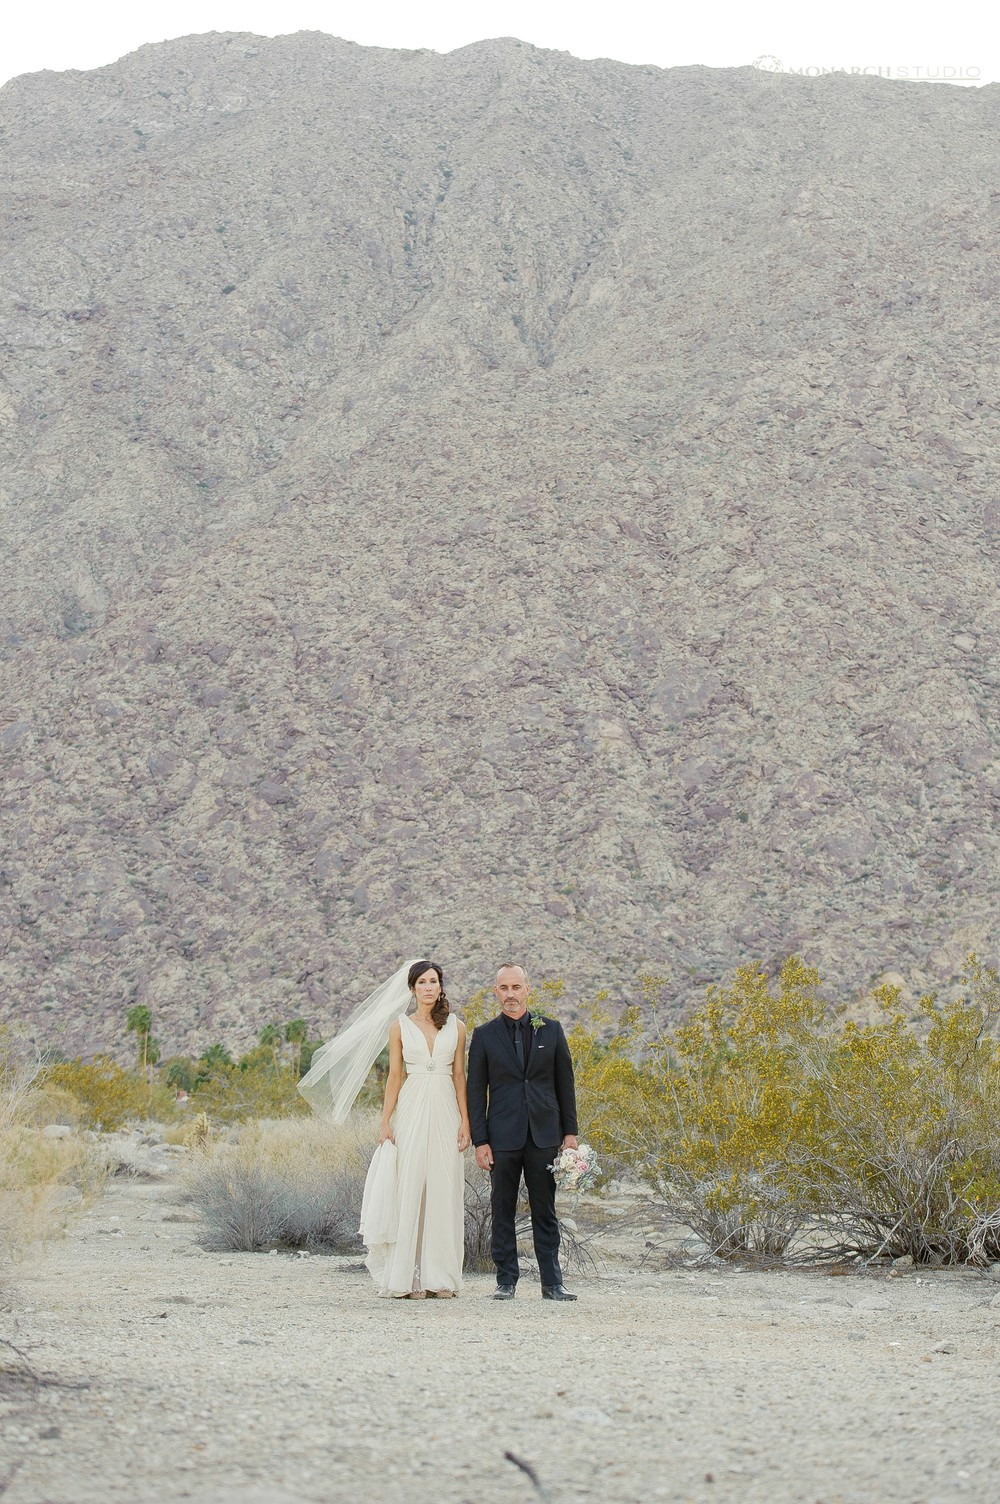 Palm-Springs-Wedding-California-Photographer-79.JPG